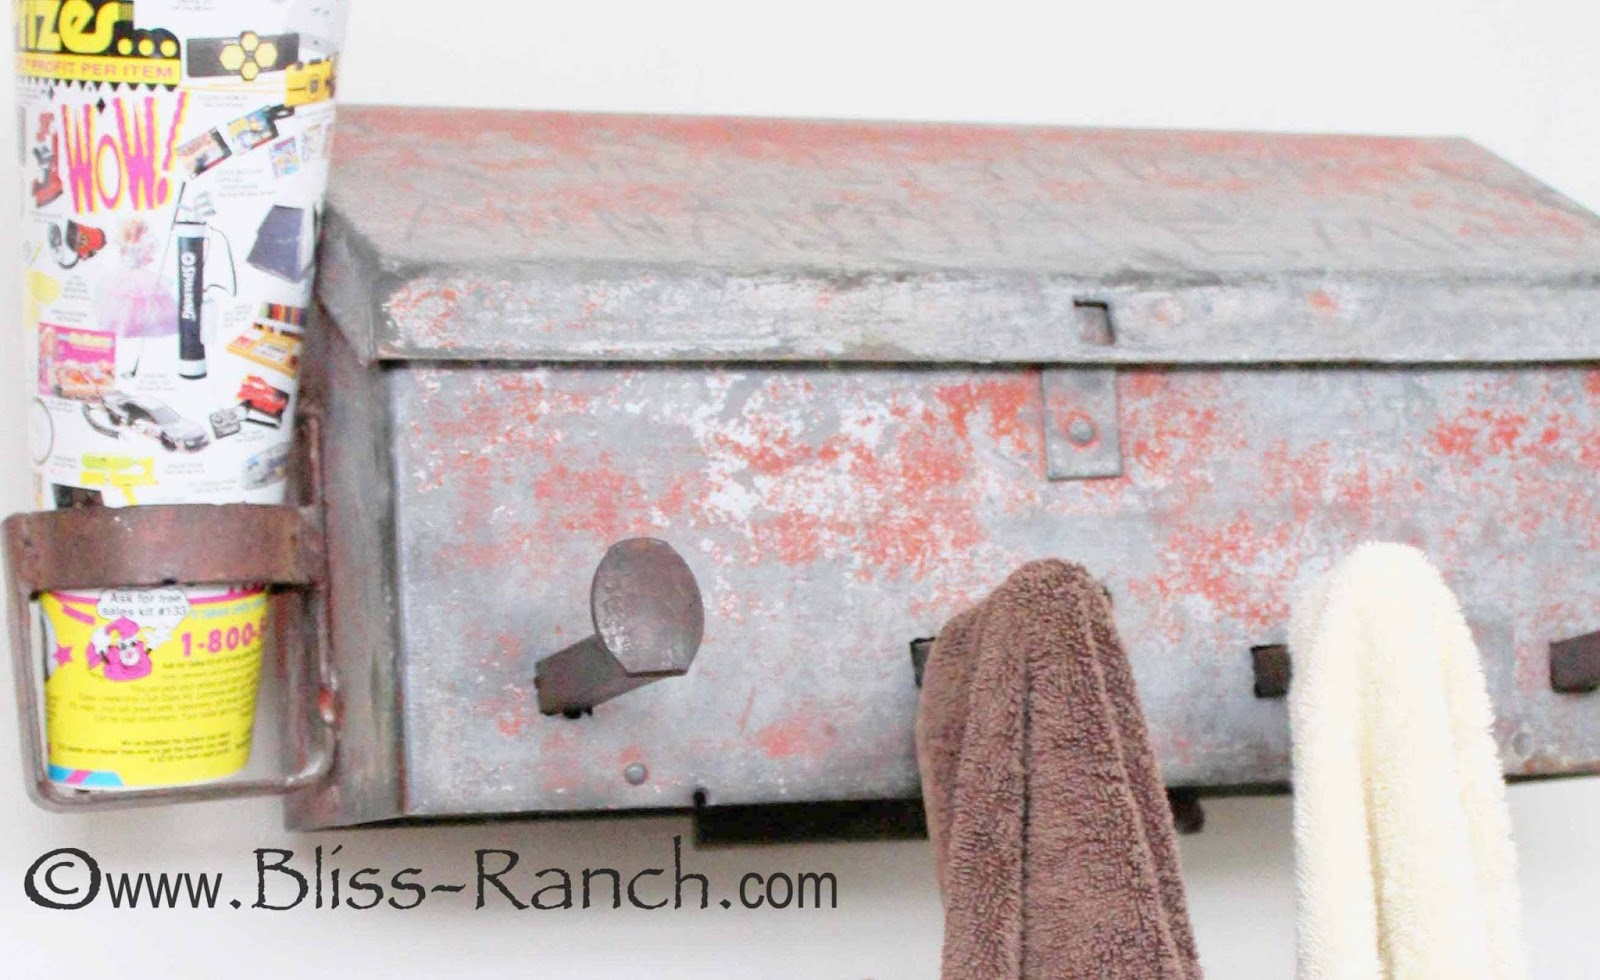 Vintage Mailbox Turned Towel Holder, Bliss-Ranch.com